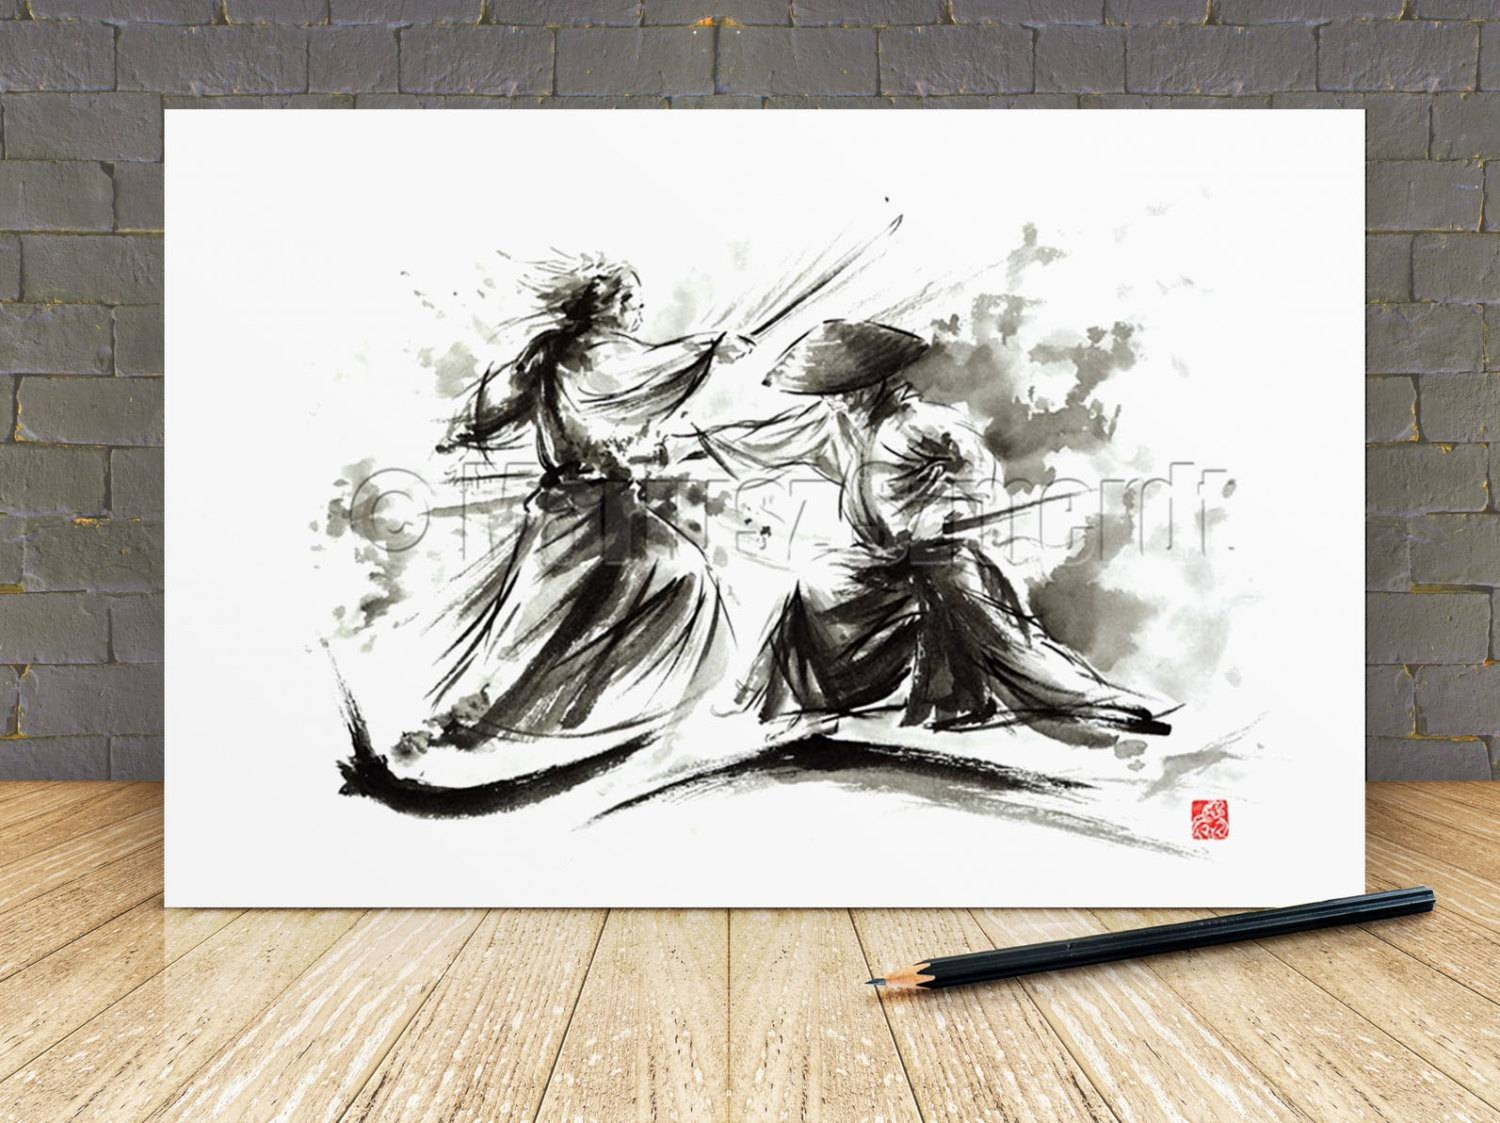 Sword Wall Plaques Displaying Photos Of Samurai Wall Art View 3 Of 20 Photos